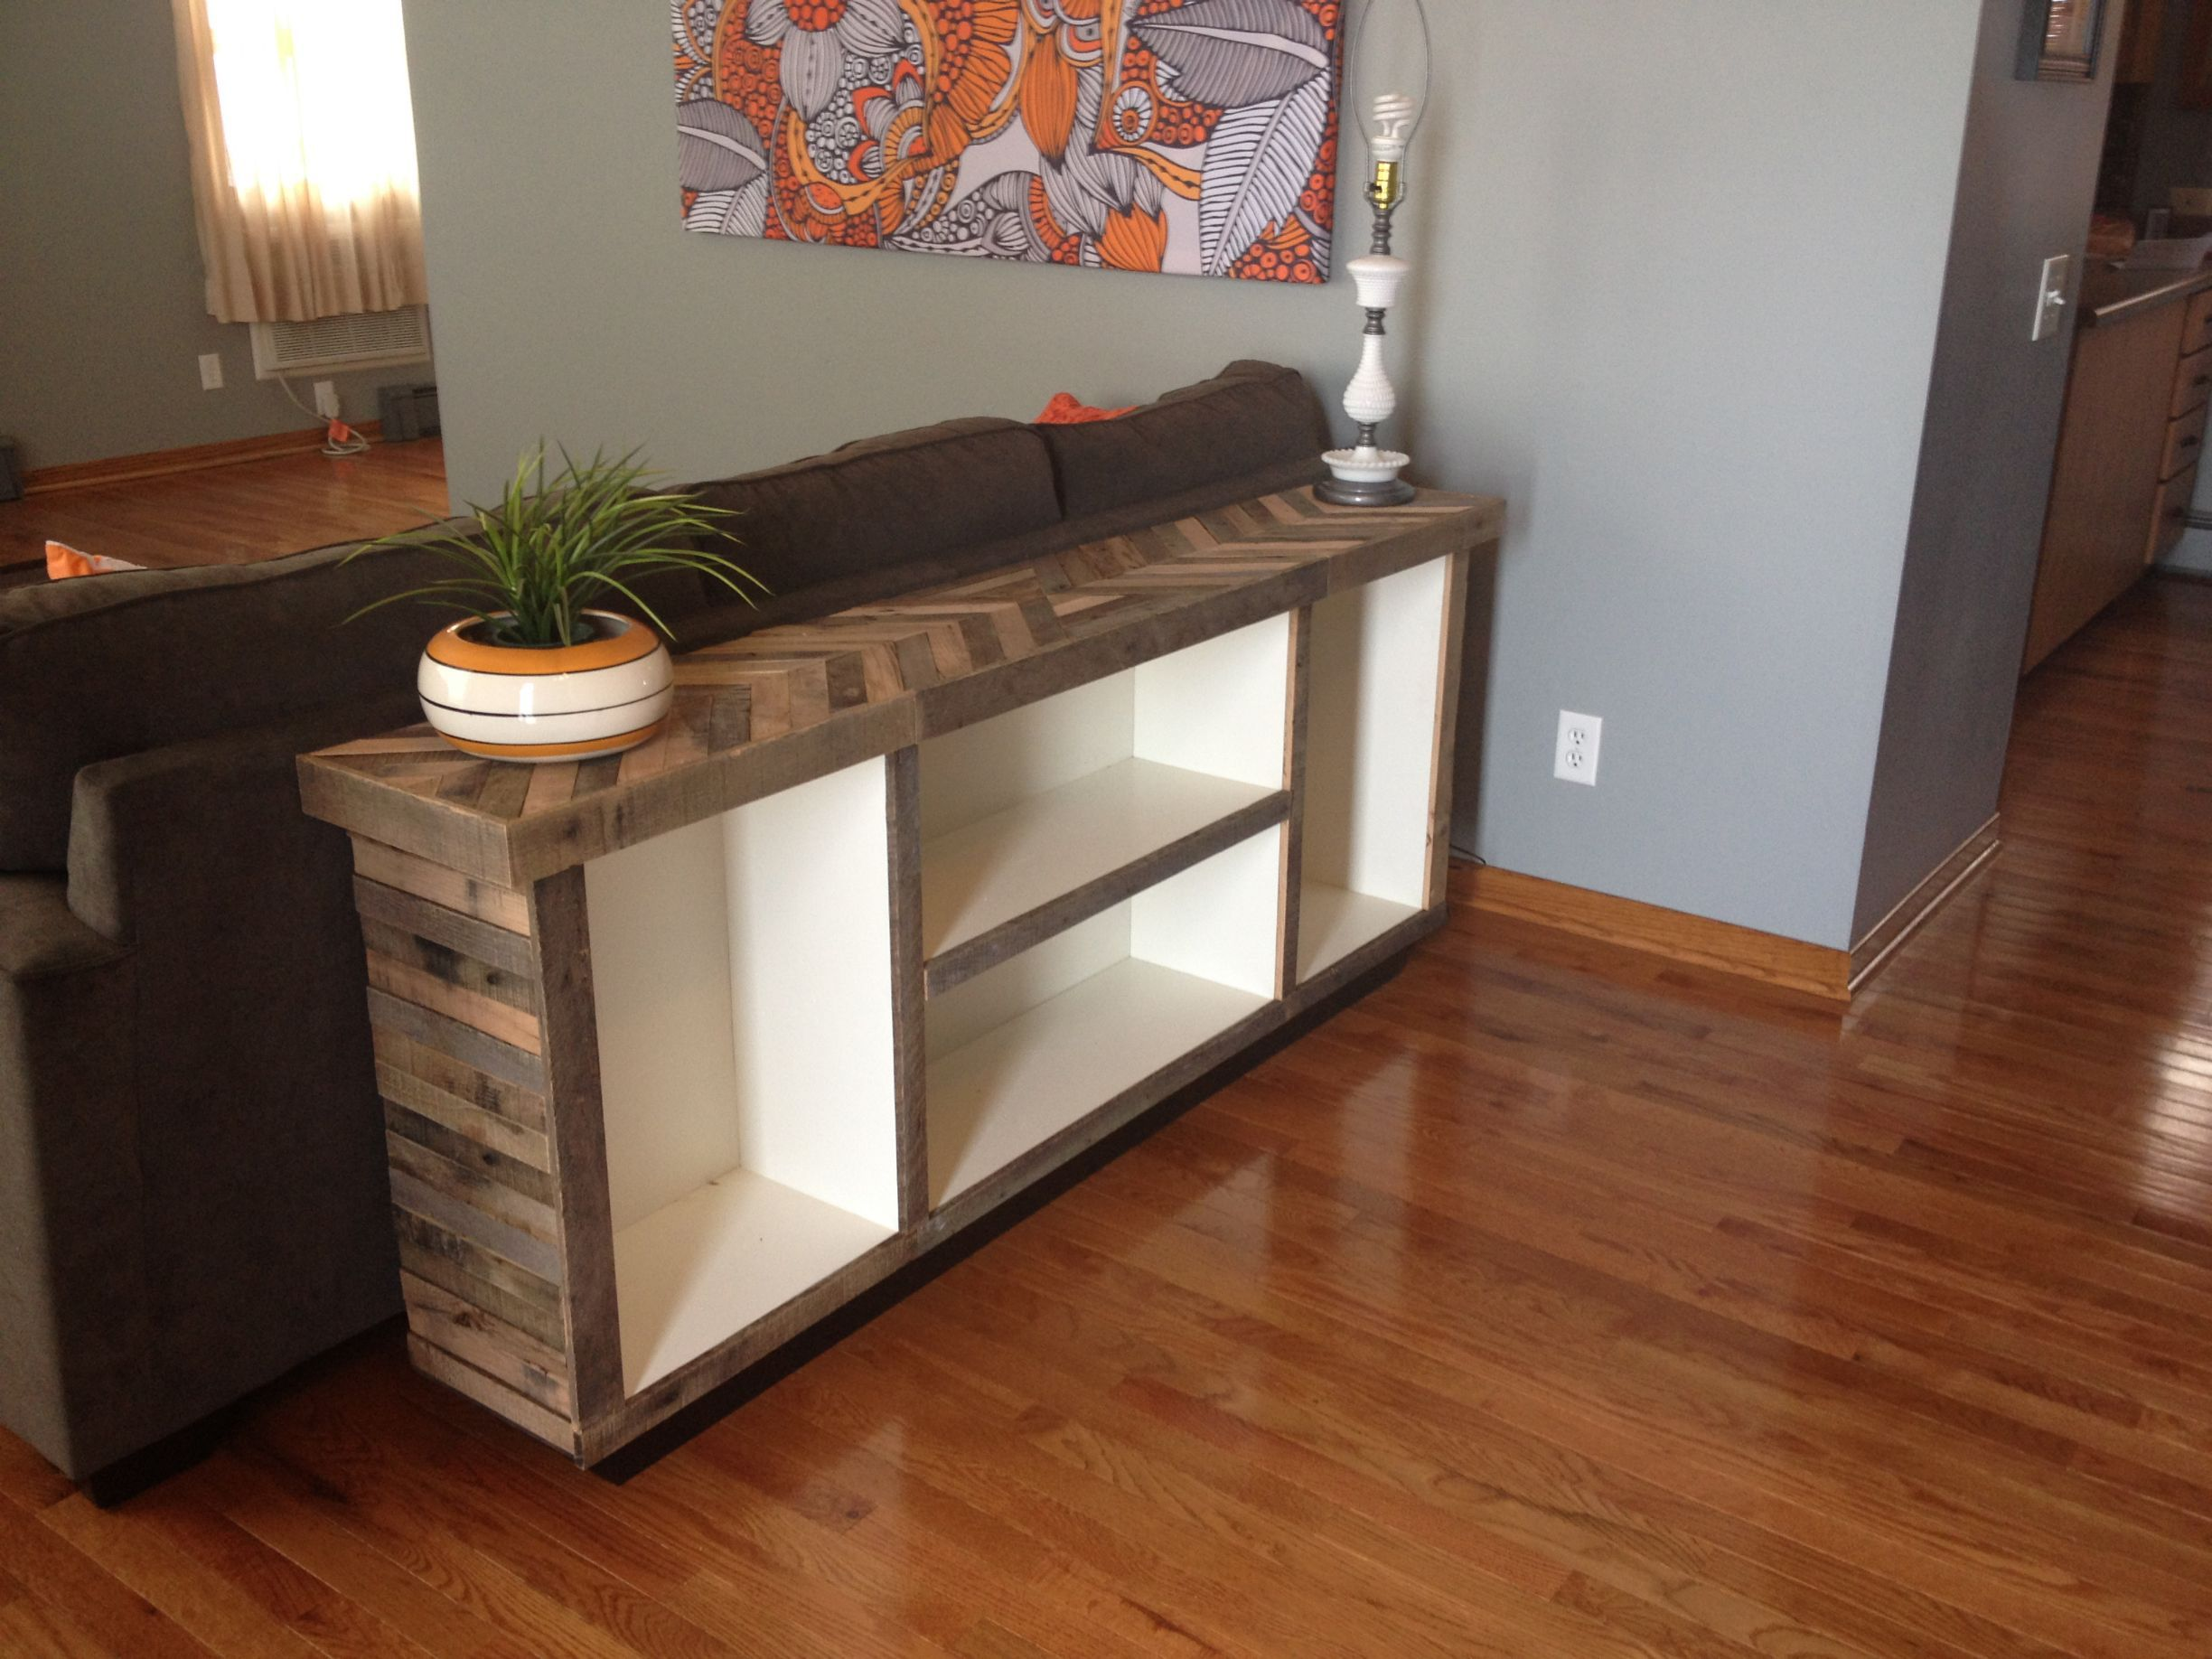 12 Clever Ways to Repurpose Wooden Pallets   Building with ...